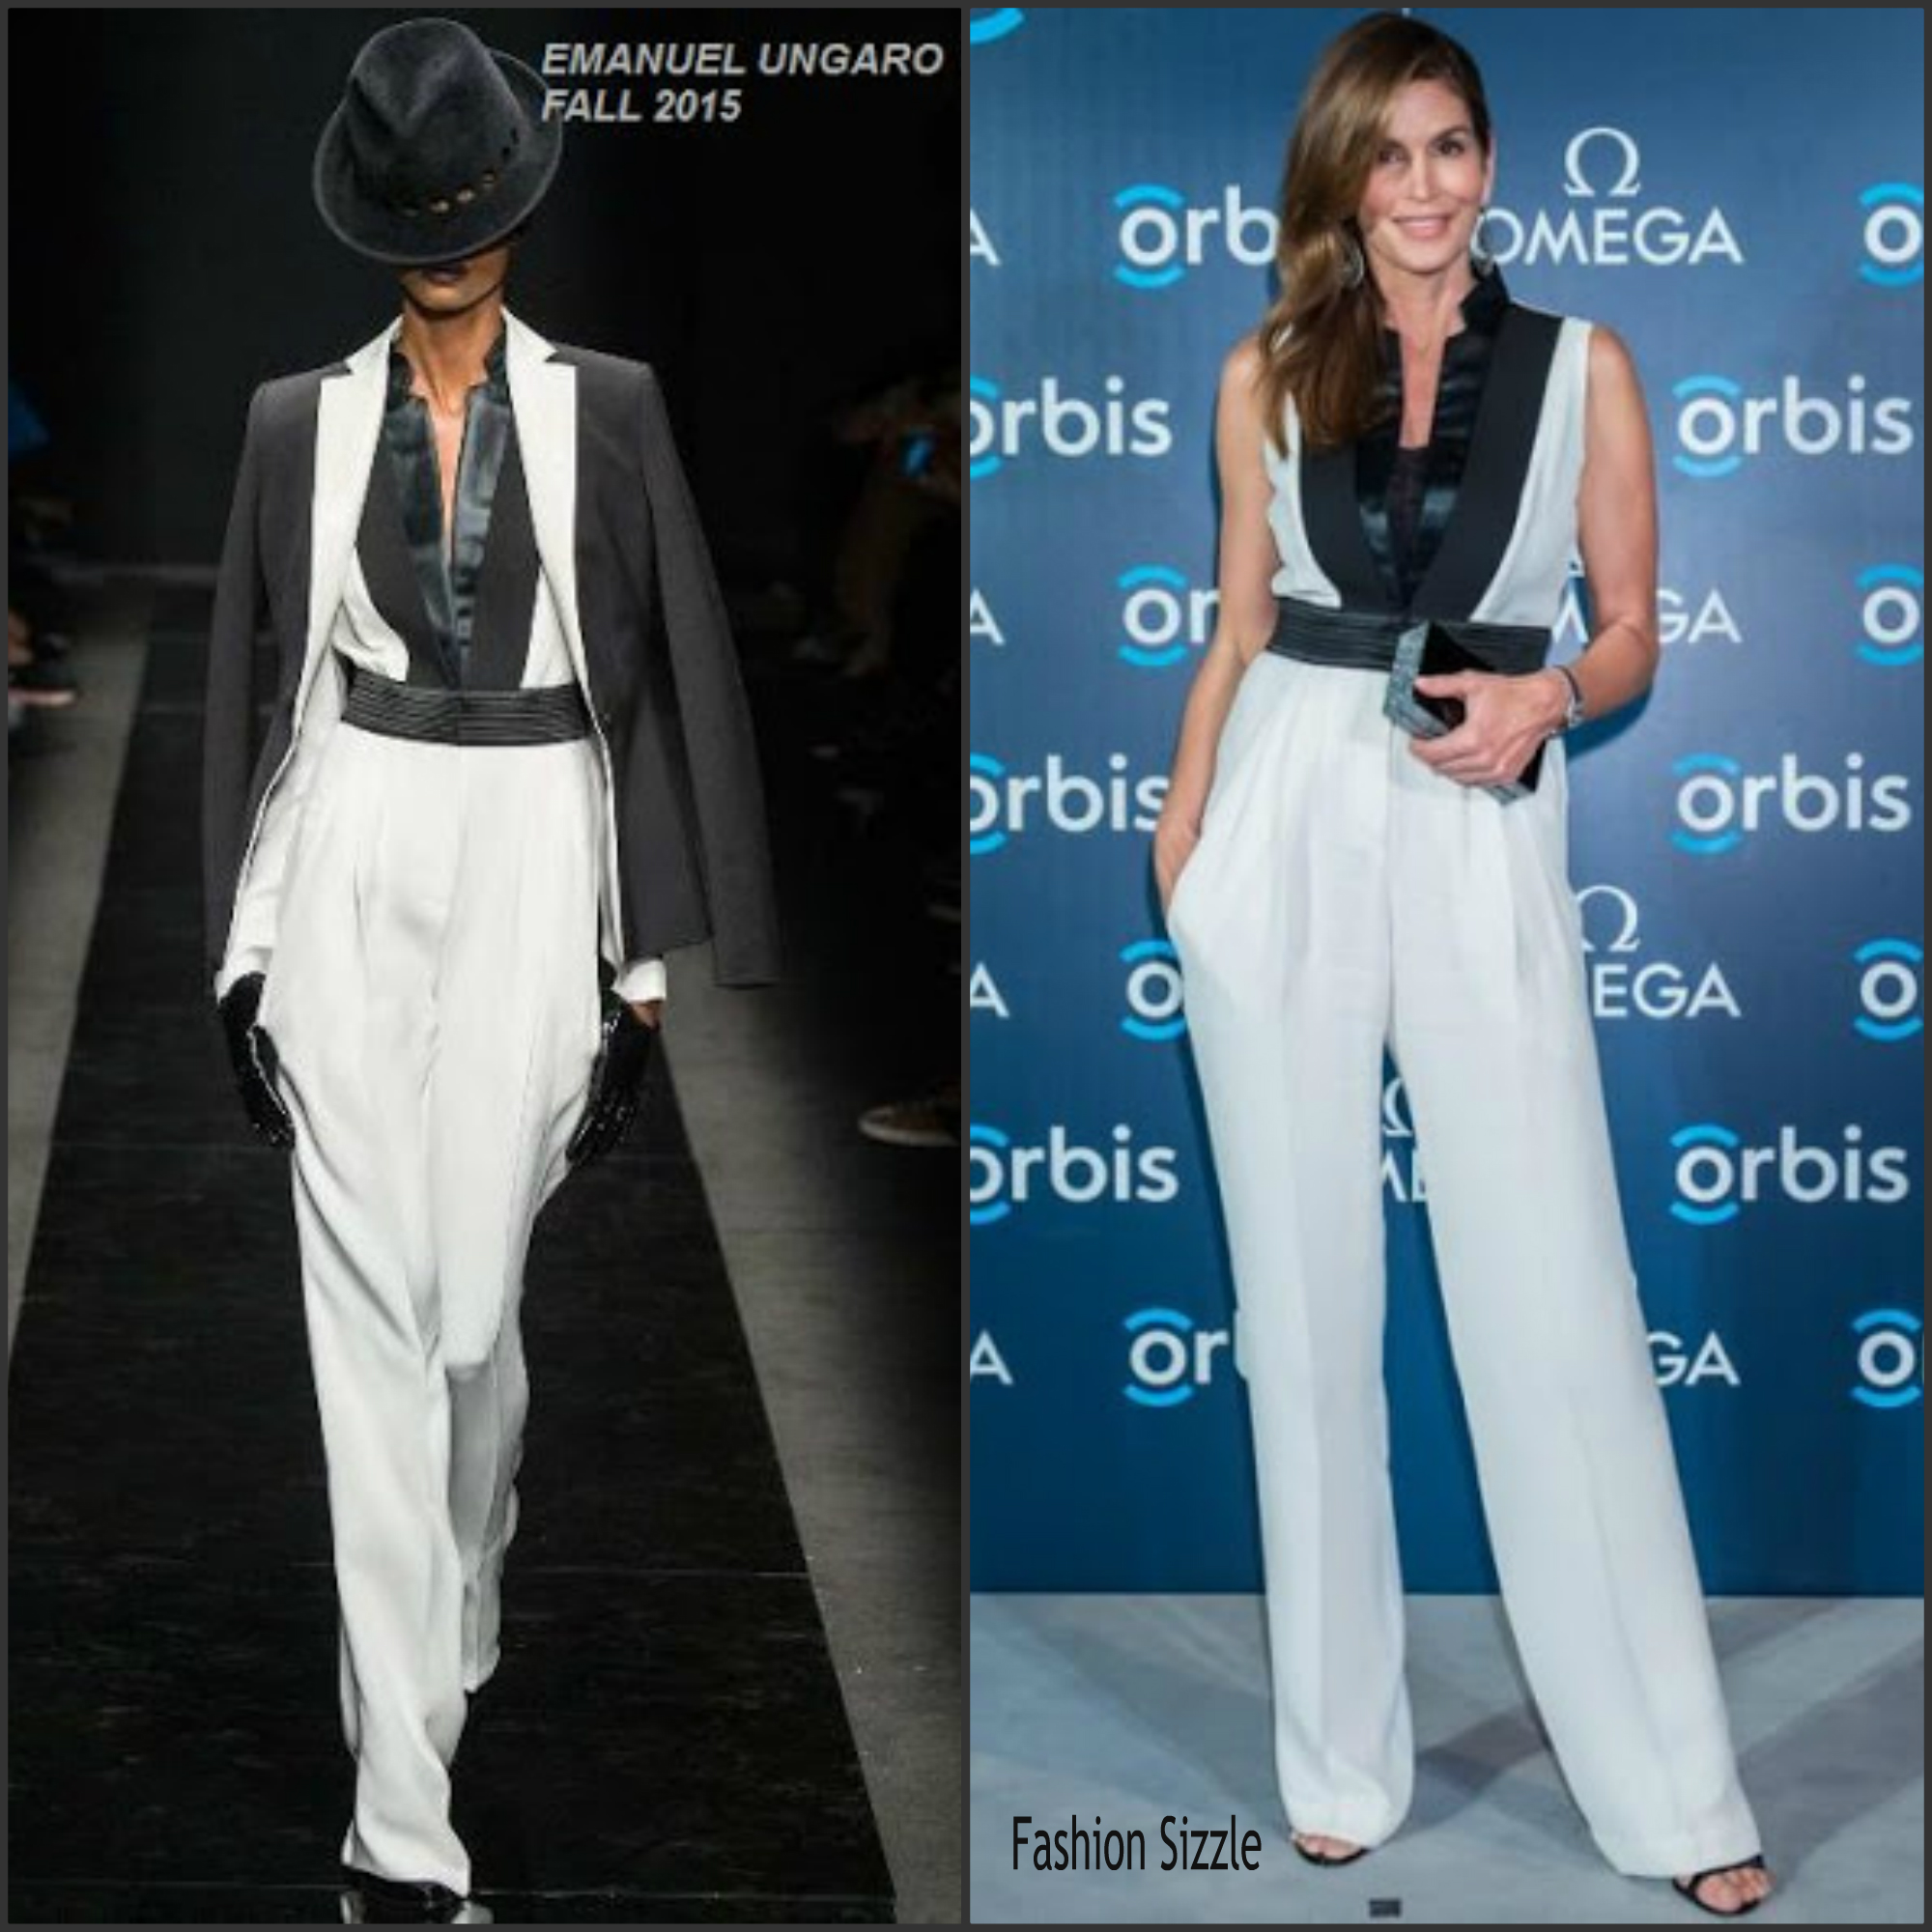 cindy-crawford-in-emanuel-ungaro-at-the-hospital-in-the-sky-premiere-presented-by-Omega